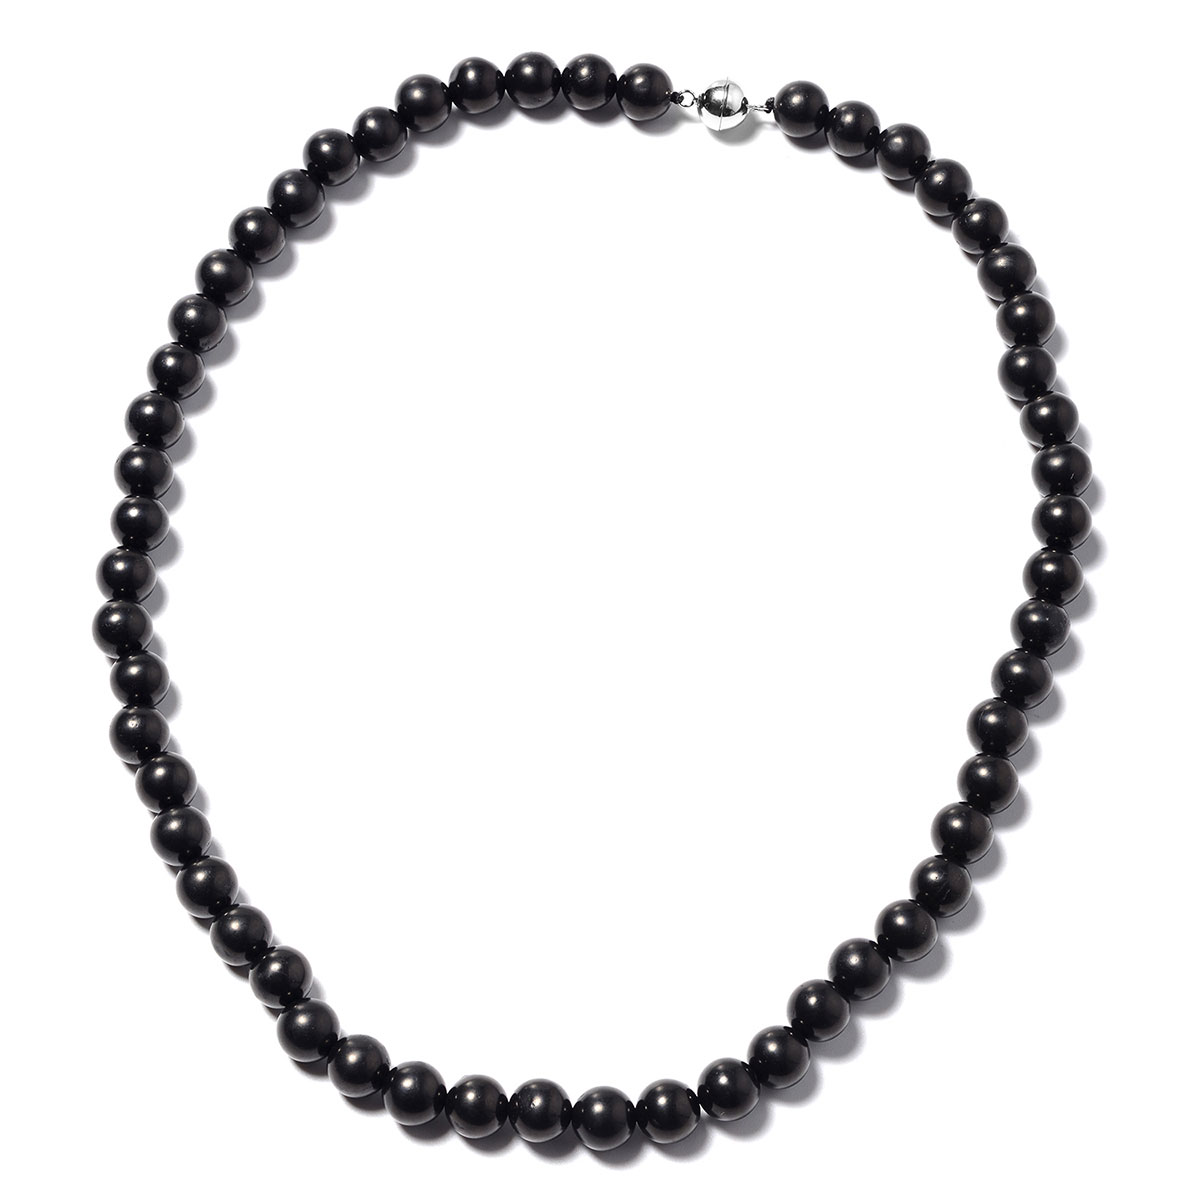 Shungite Bead Magnetic Clasp Necklace (18 in) in Sterling Silver 130 01 ctw